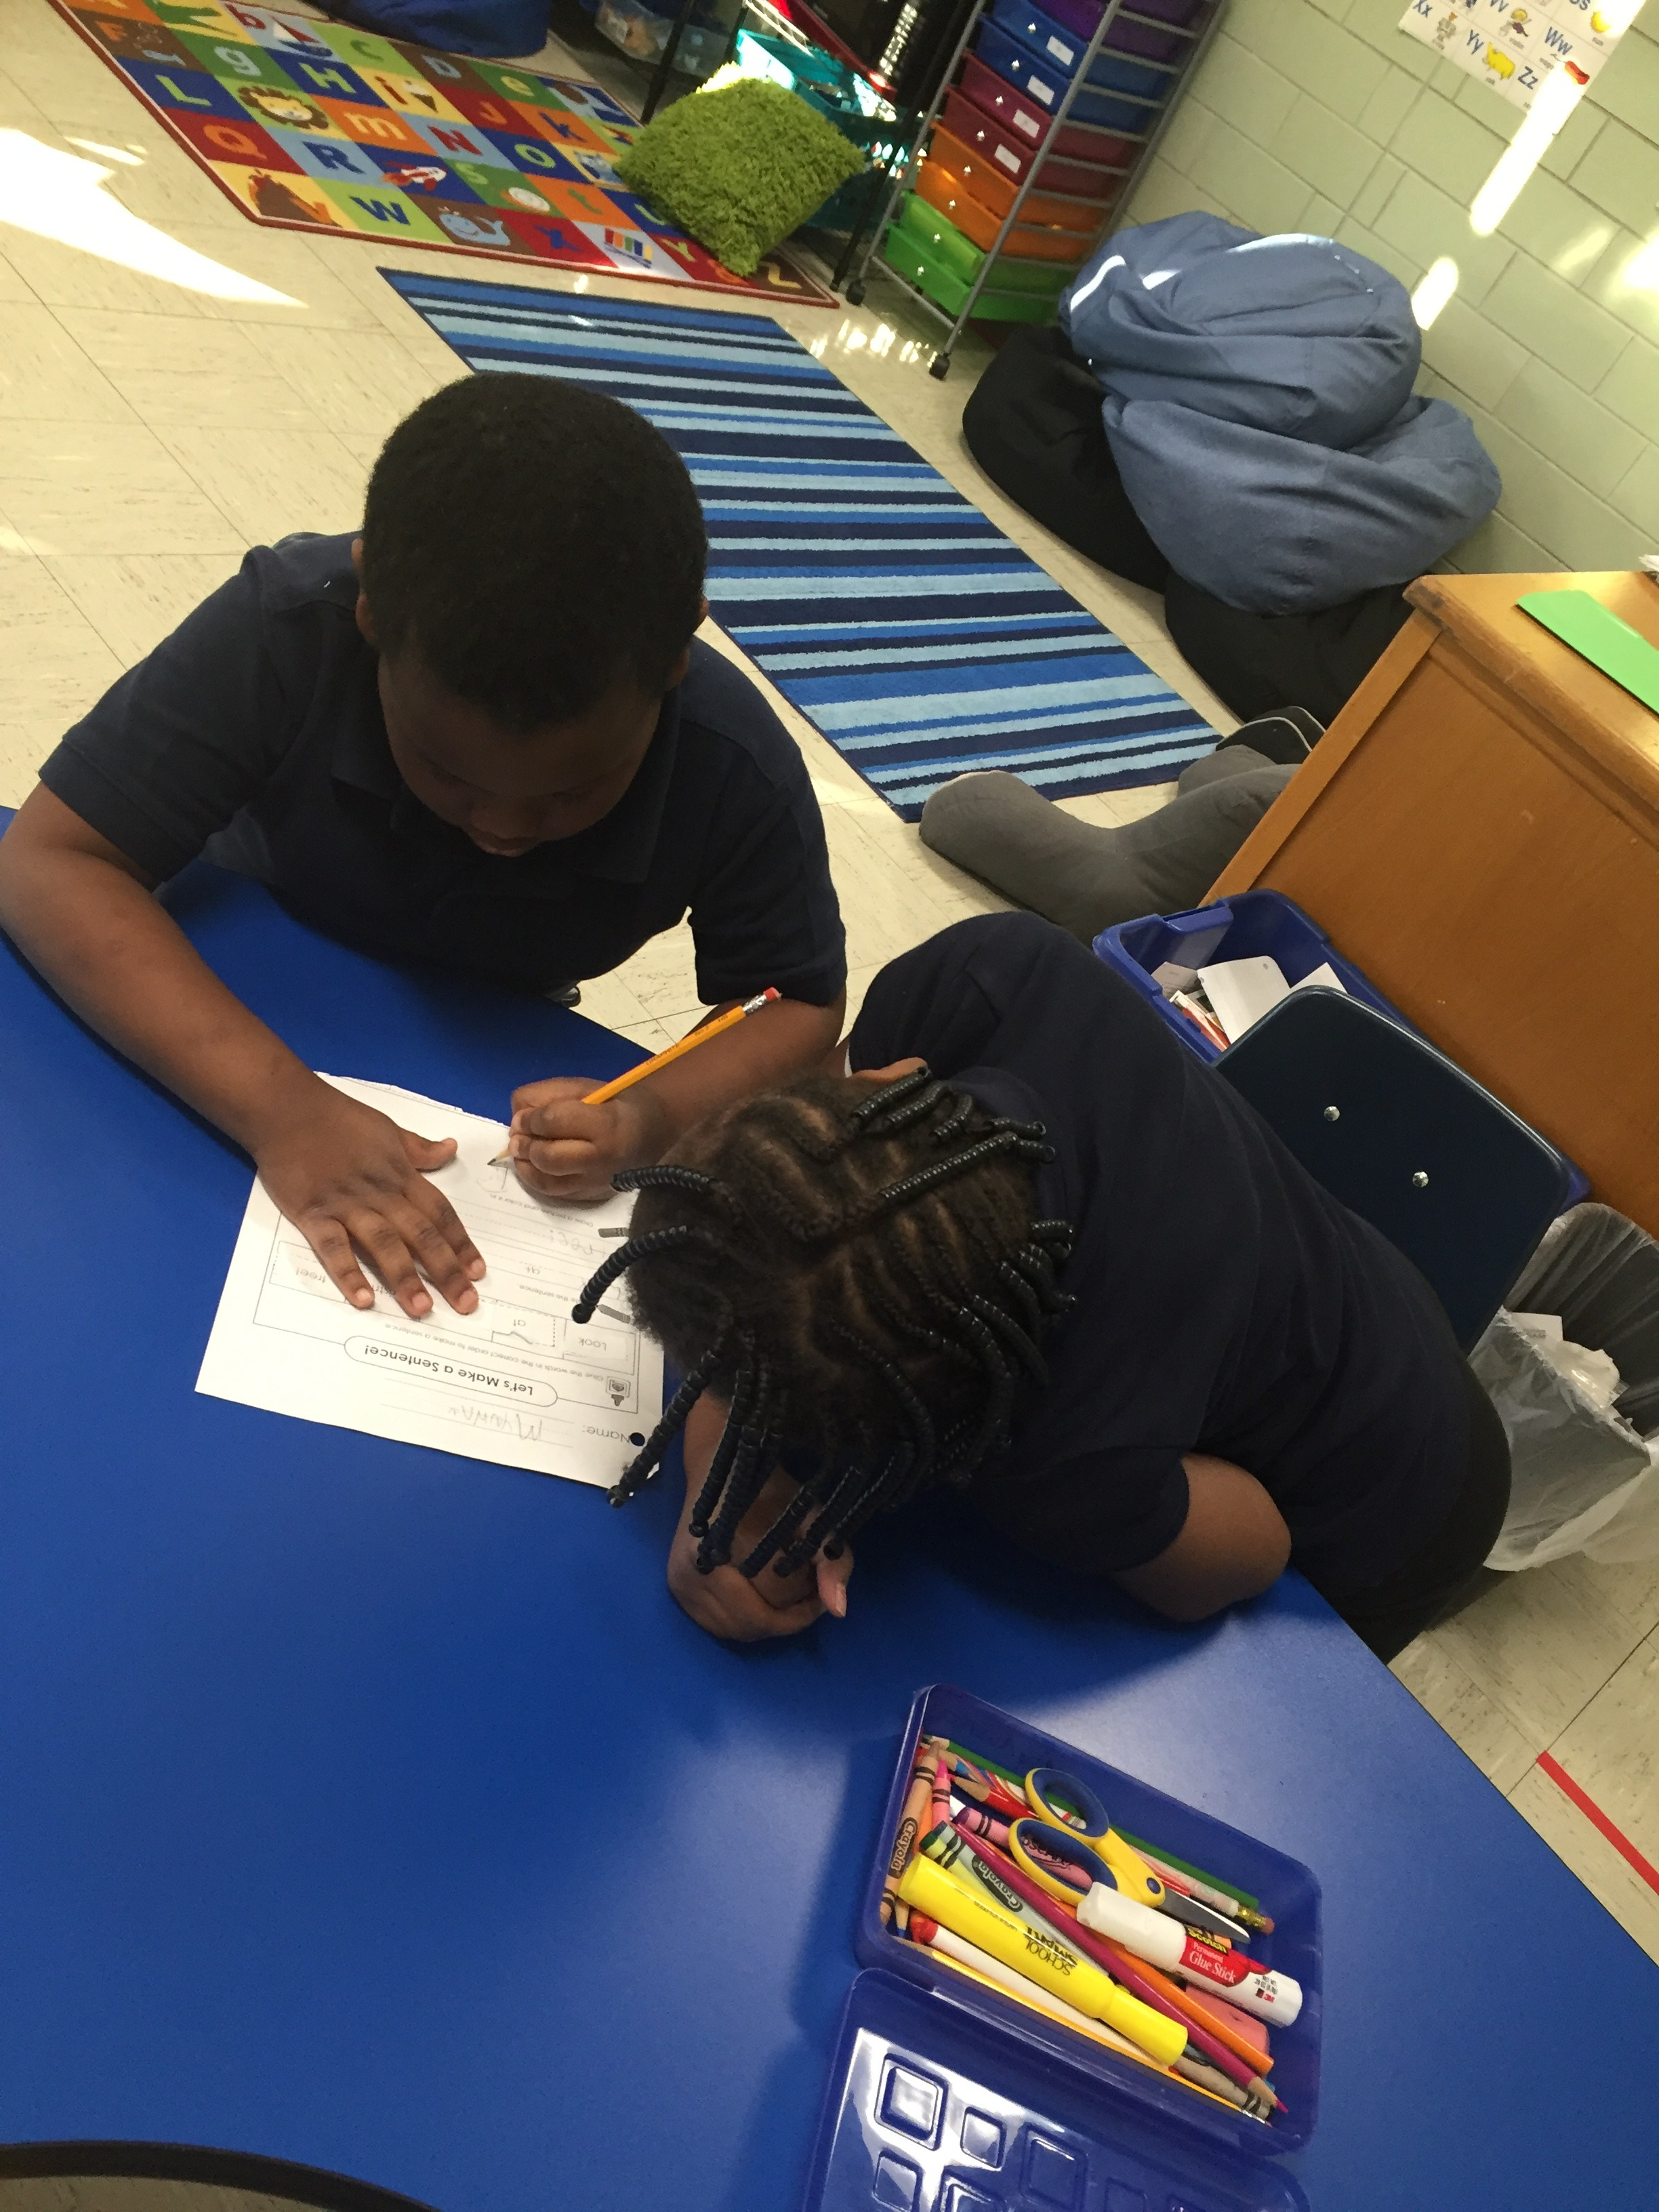 students working together on assignment